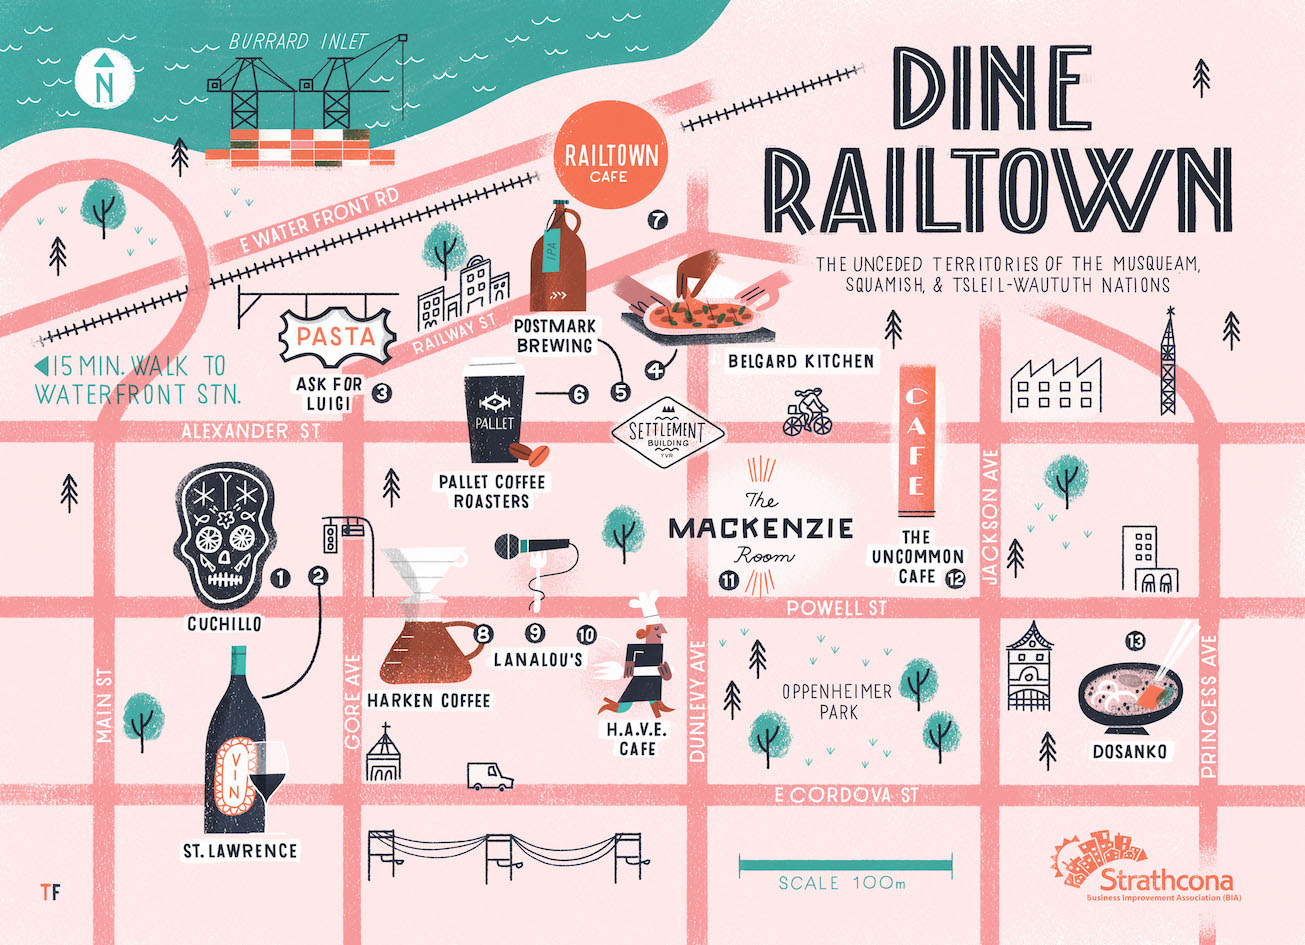 Dine Railtown愛心美食大巡禮 thumbnail